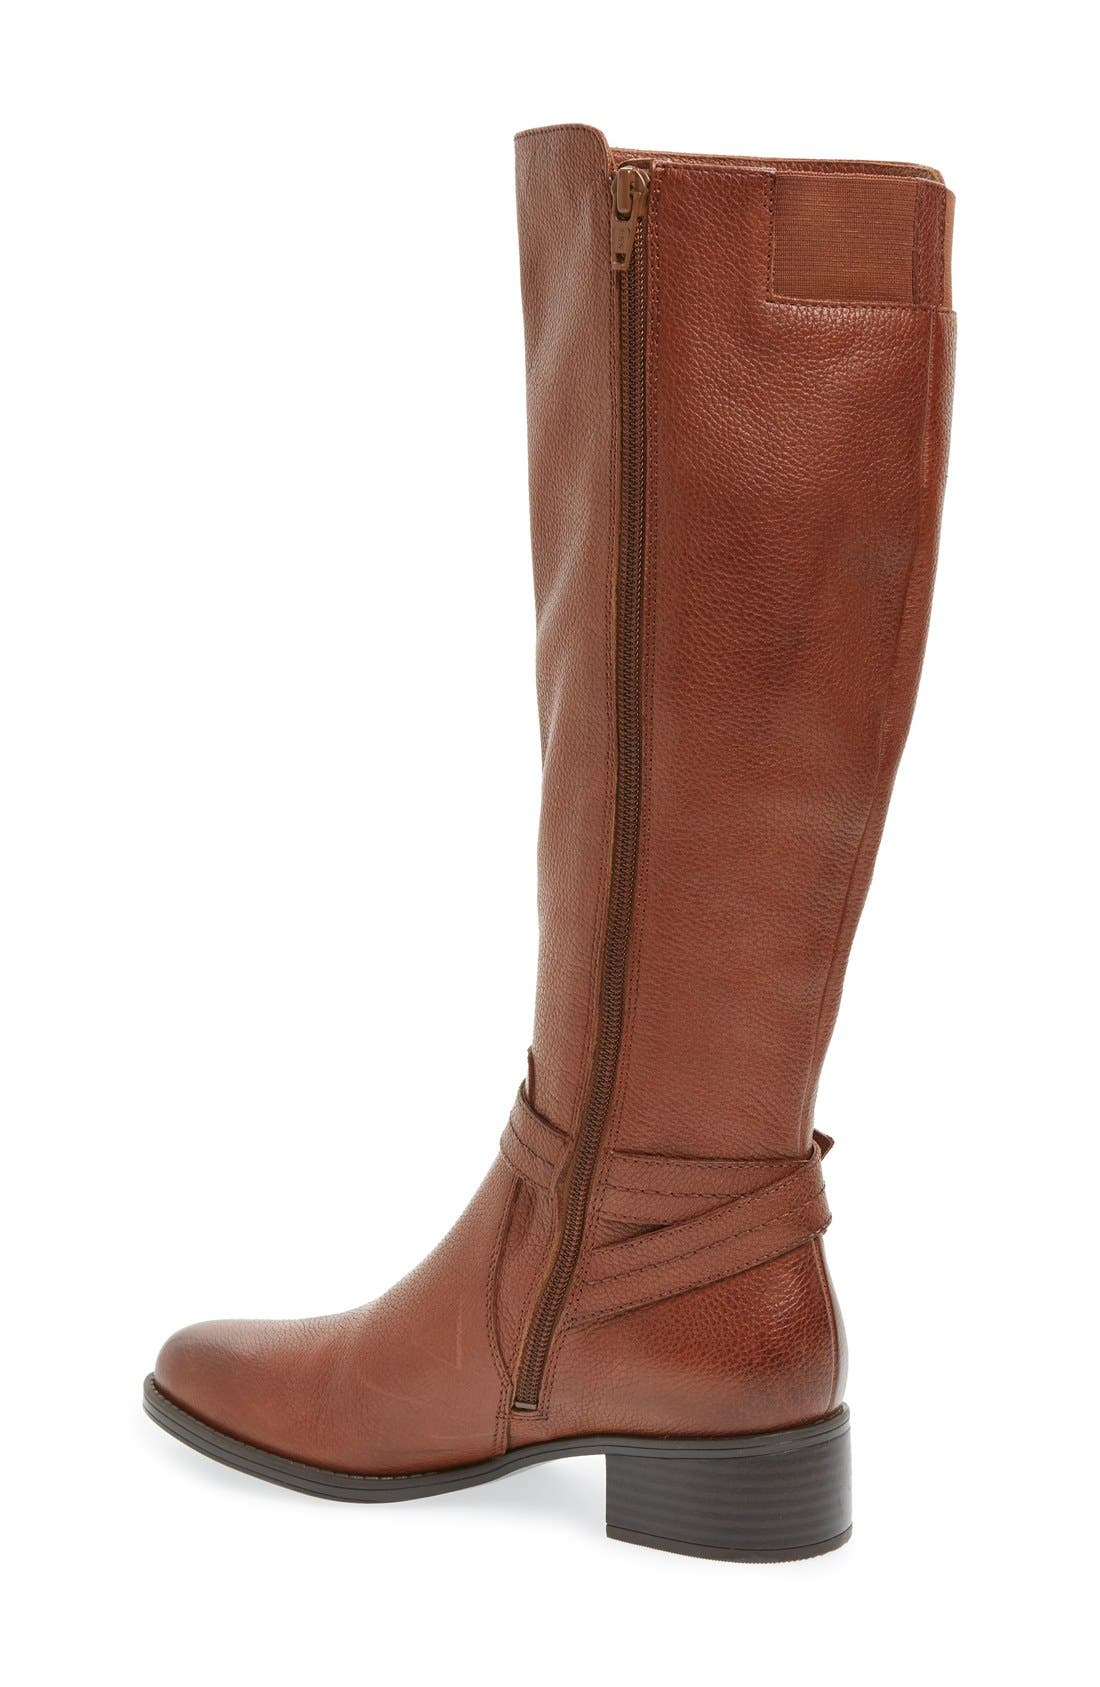 'Jelina' Riding Boot,                             Alternate thumbnail 2, color,                             Brown Leather